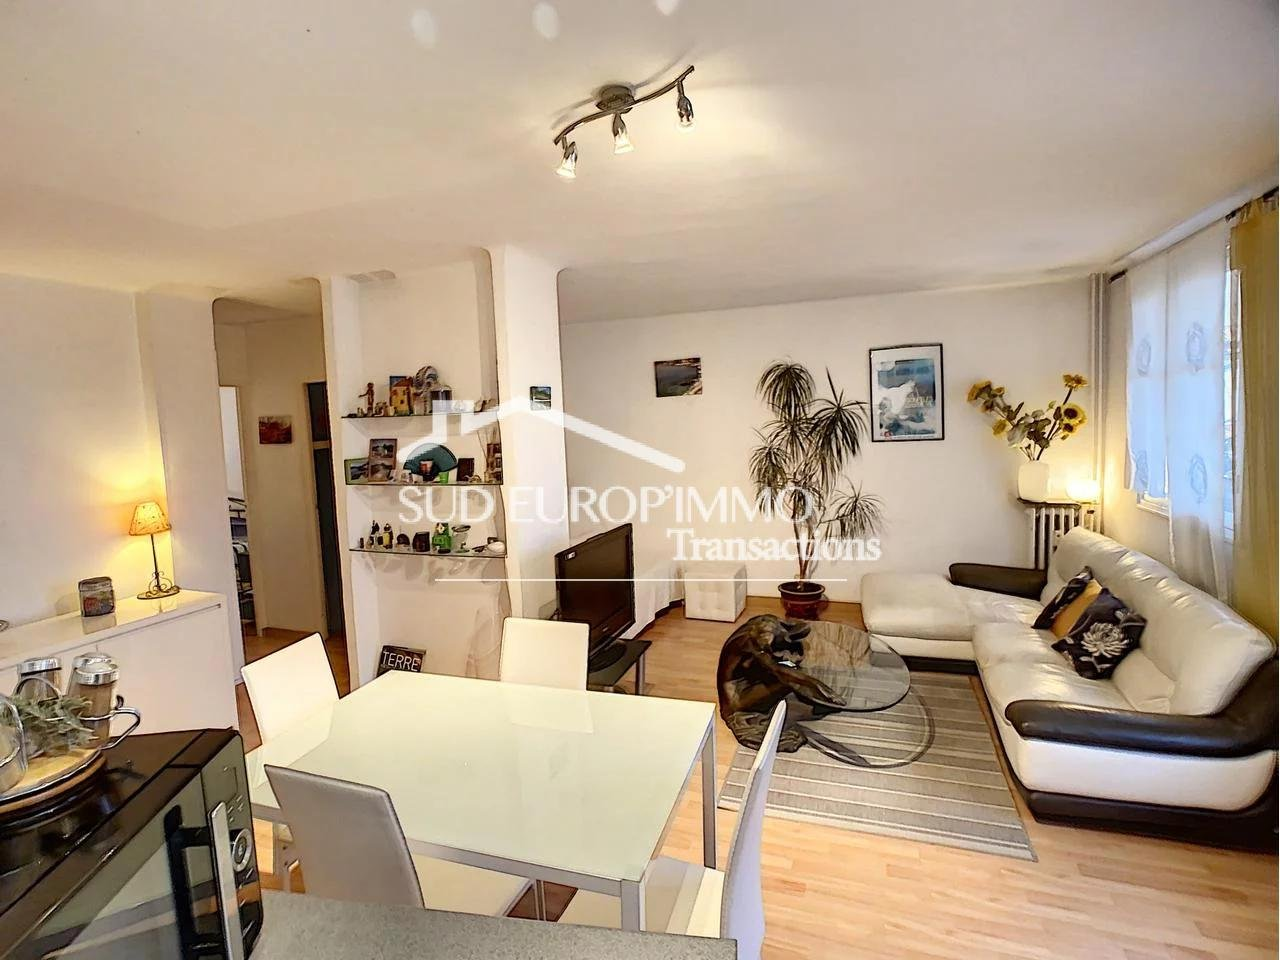 Appartement  3 Rooms 48m2  for sale   176000 €